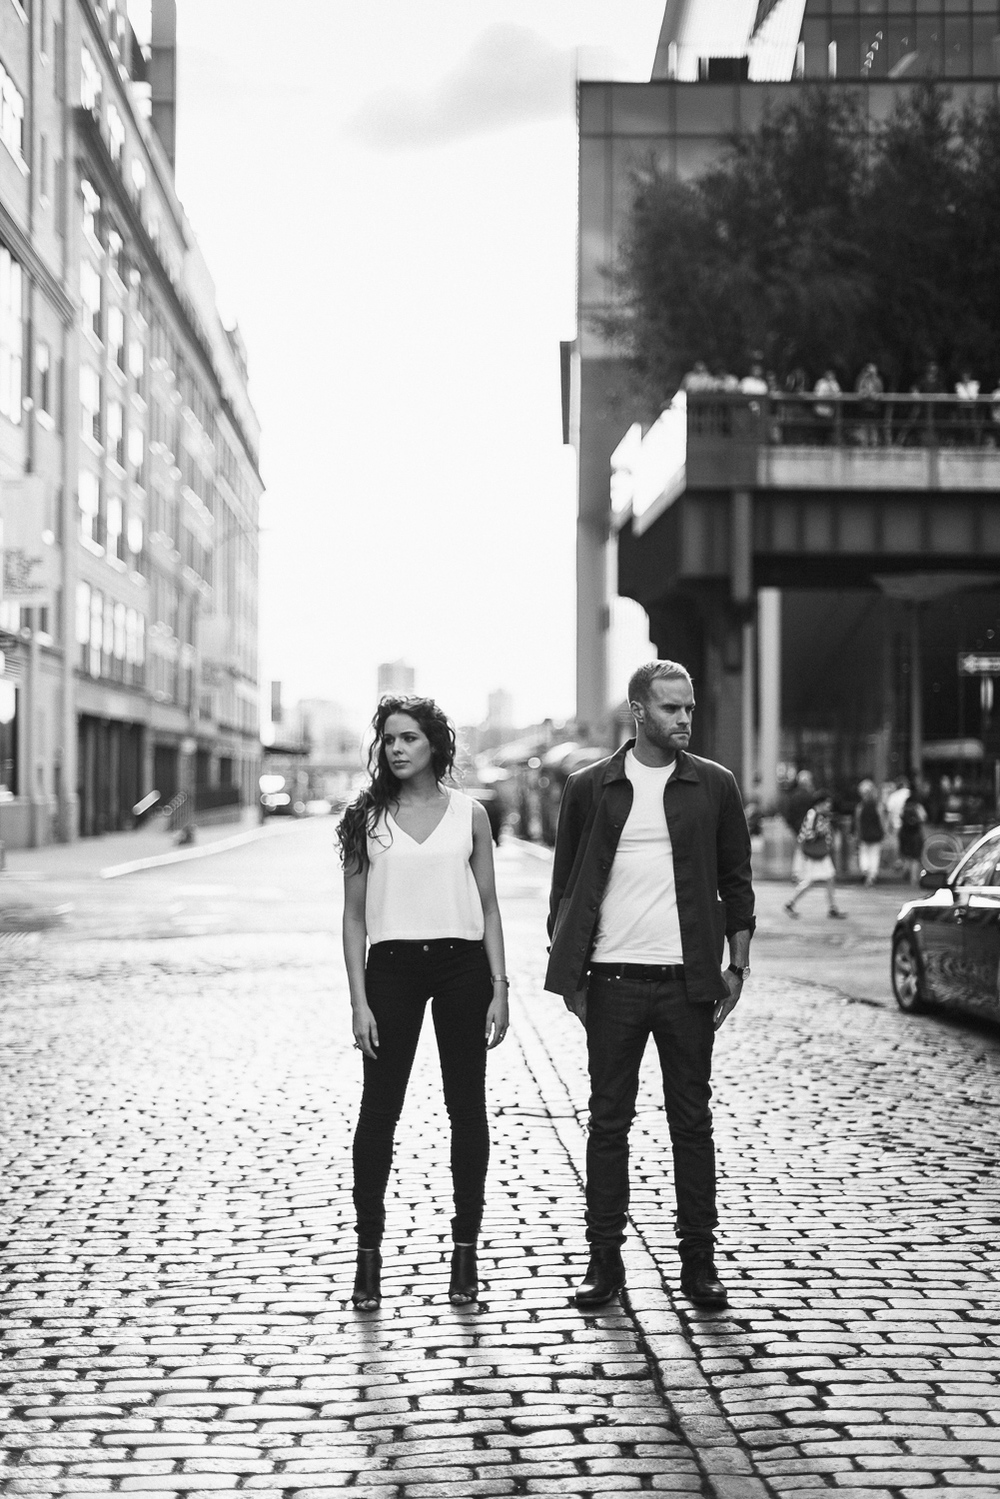 Non-cheesy Meatpacking District Engagement Photos